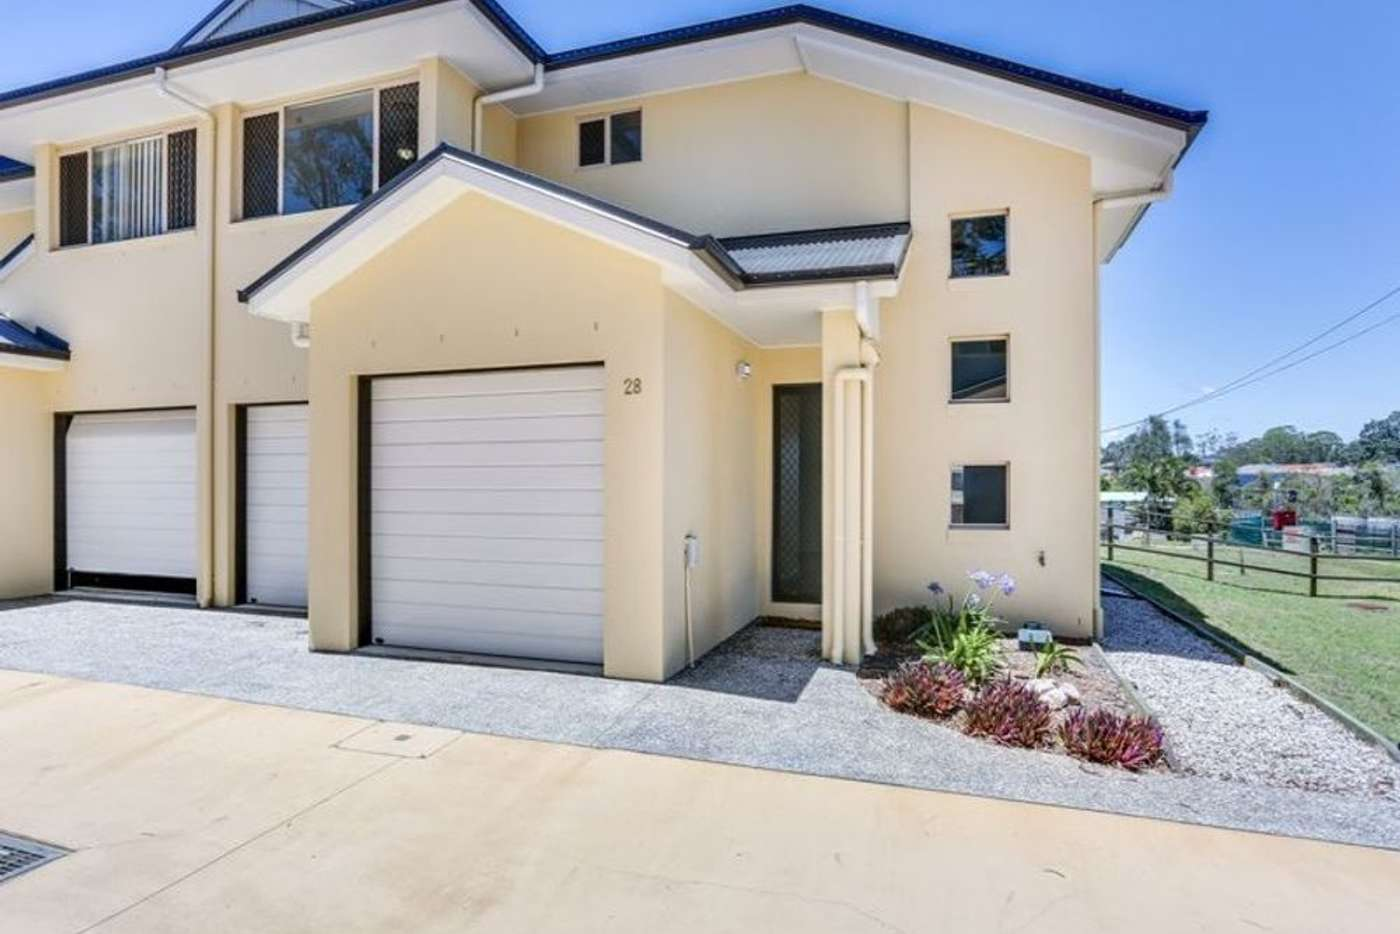 Main view of Homely unit listing, 28/5 Pine Valley Drive, Joyner QLD 4500